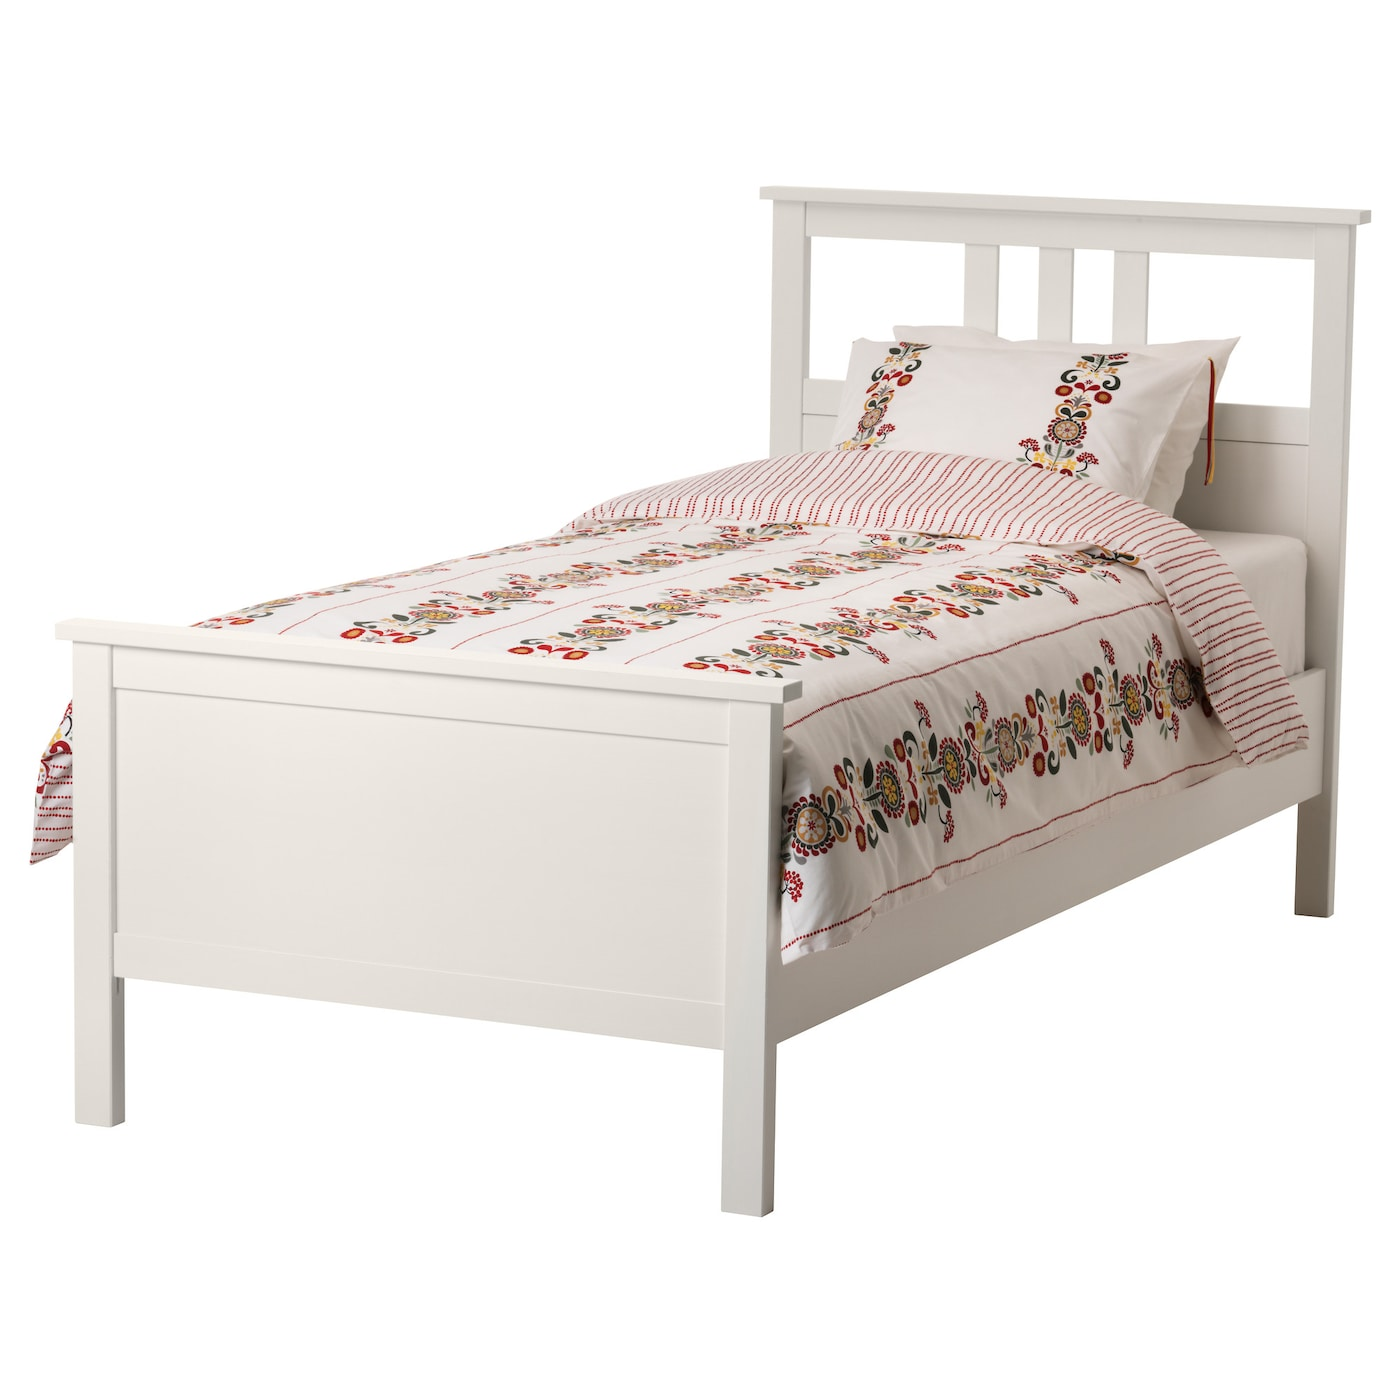 IKEA HEMNES bed frame Made of solid wood  which is a hardwearing and warm  natural. Single Beds   Single Bed Frames   IKEA